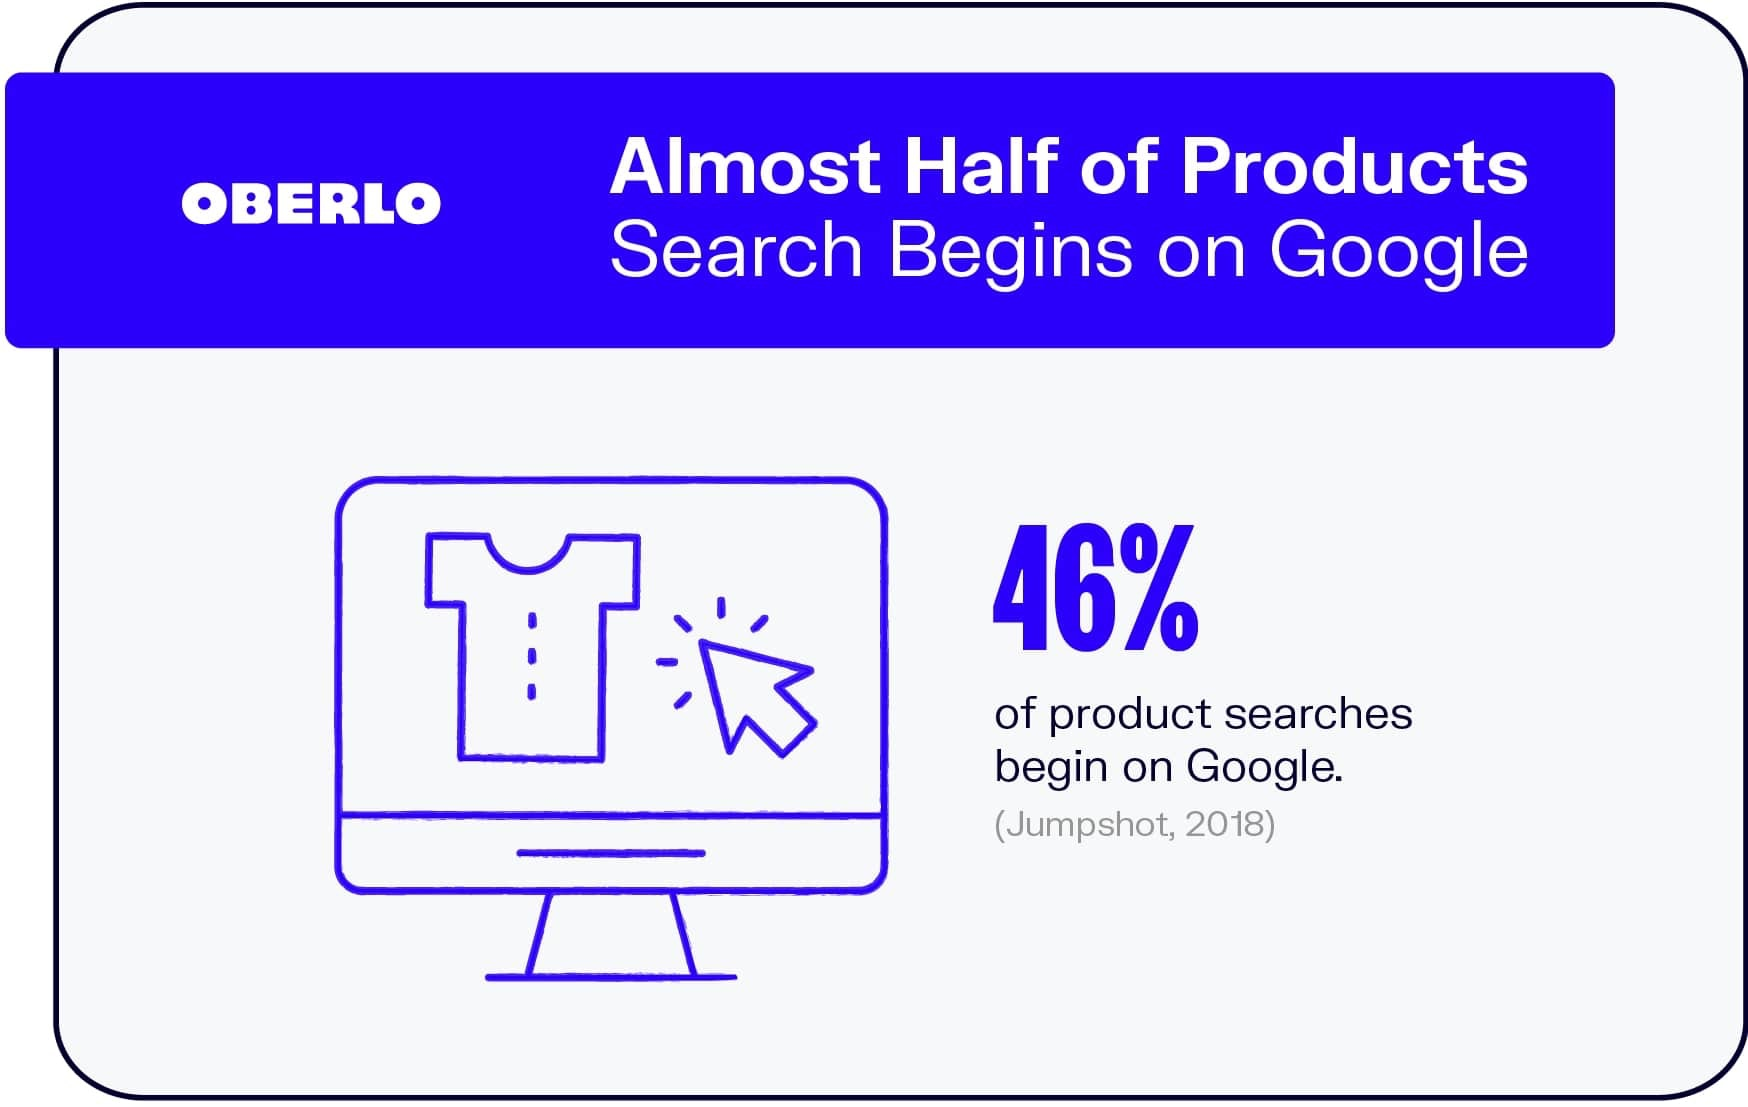 Almost Half of All Product Searches Begin on Google